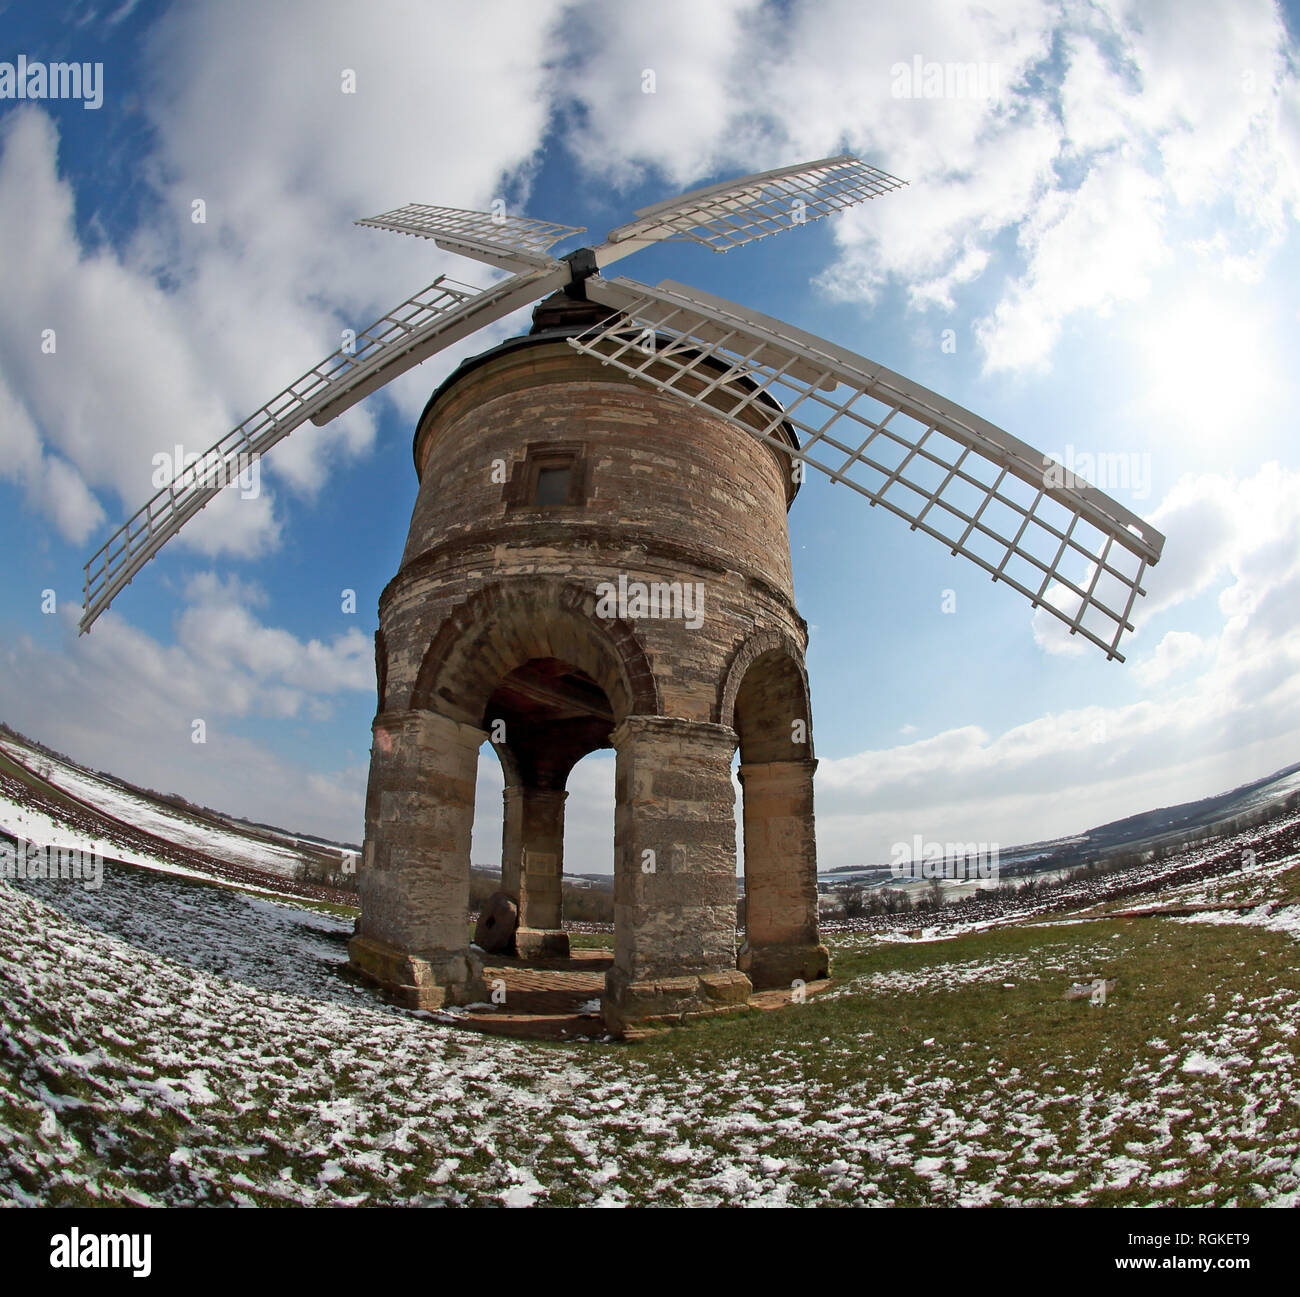 Chesterton Windmill, Leamington Spa, Warwickshire, England, UK - Stock Image